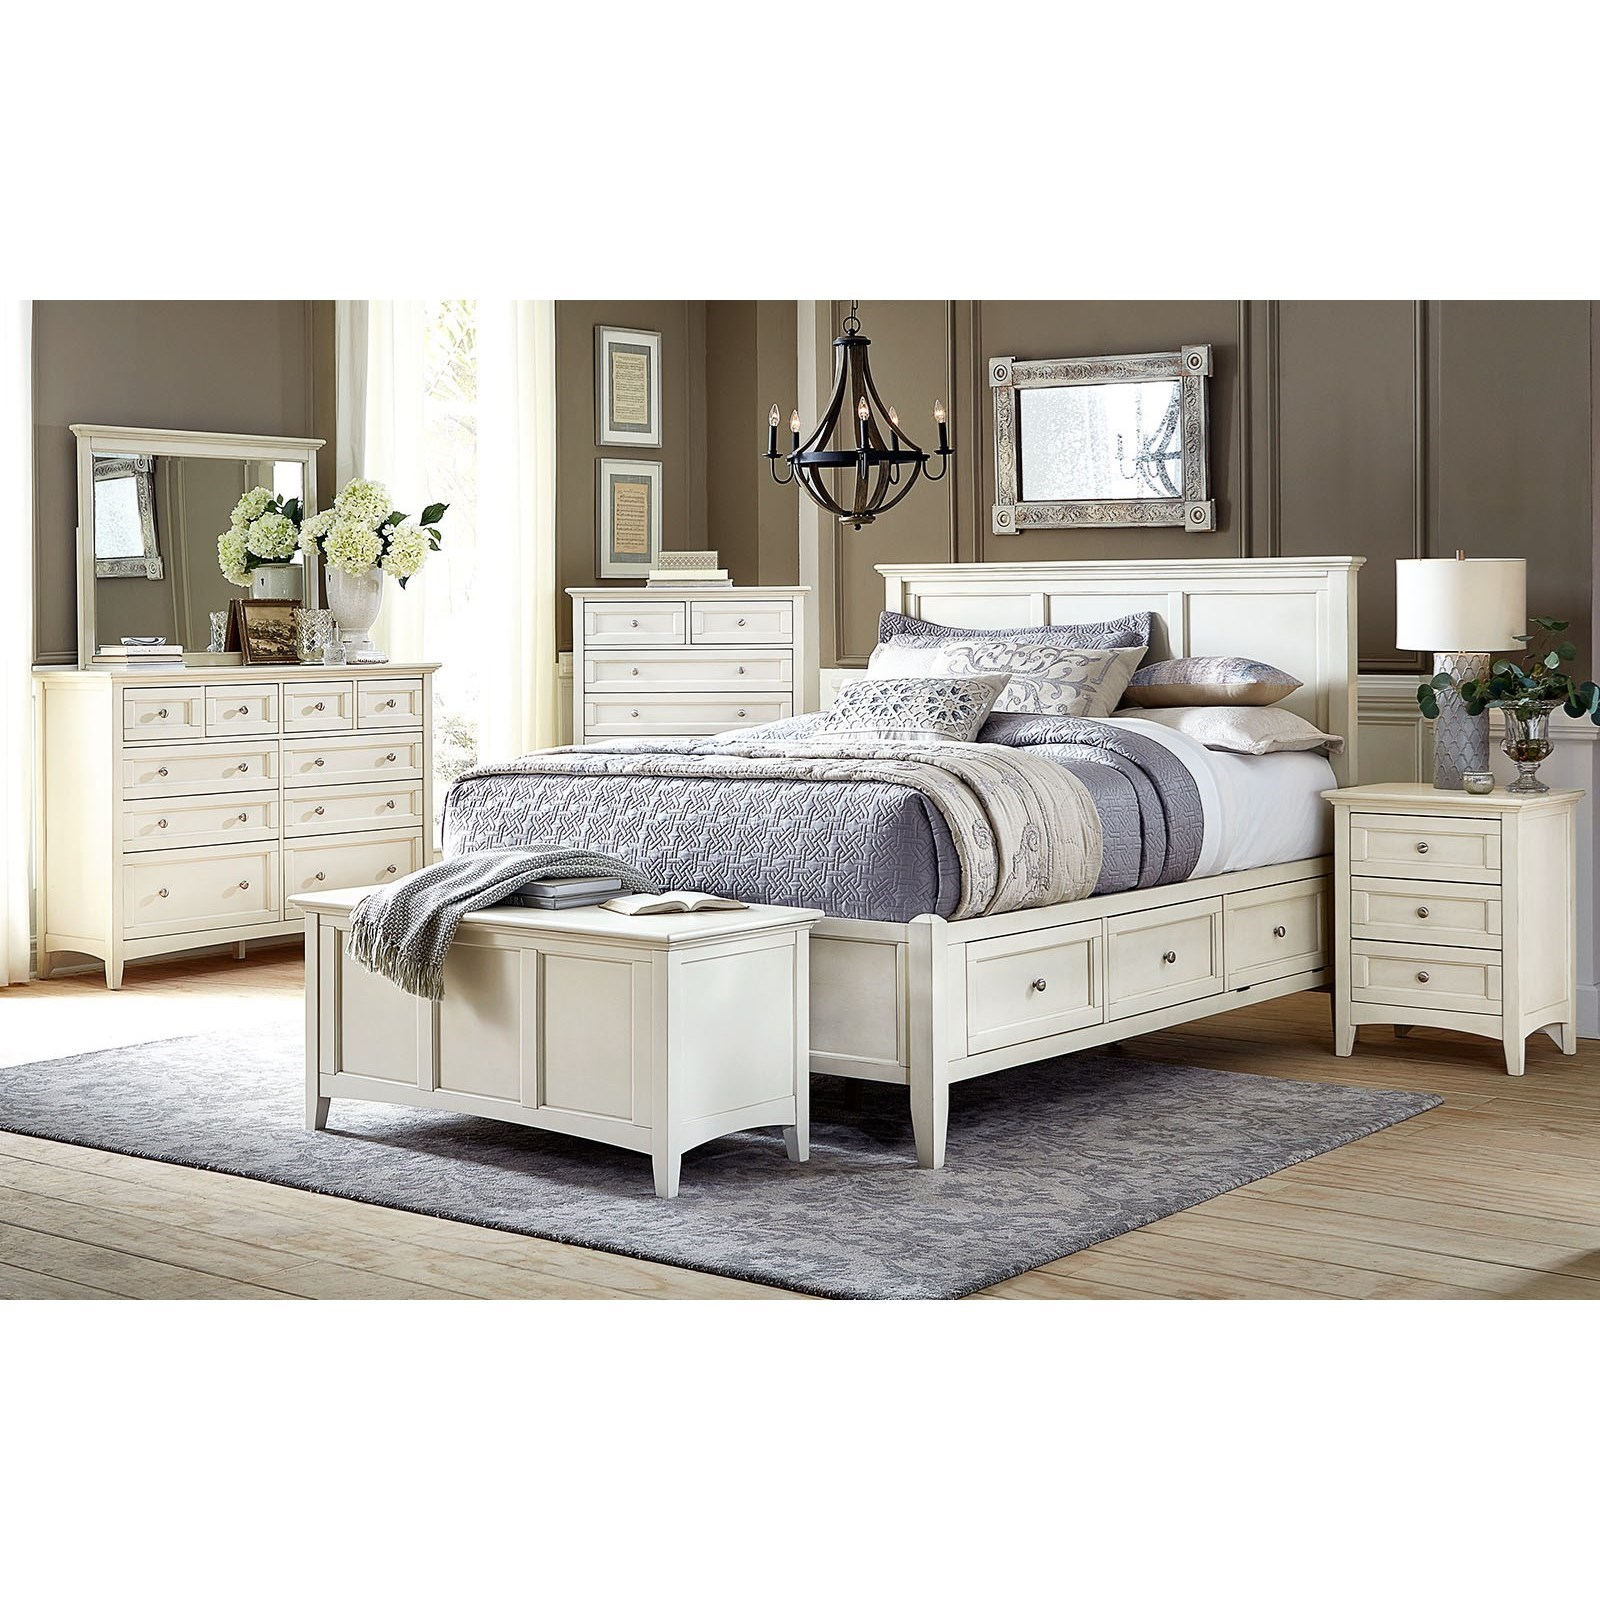 Northlake California King Bedroom Group by AAmerica at SuperStore